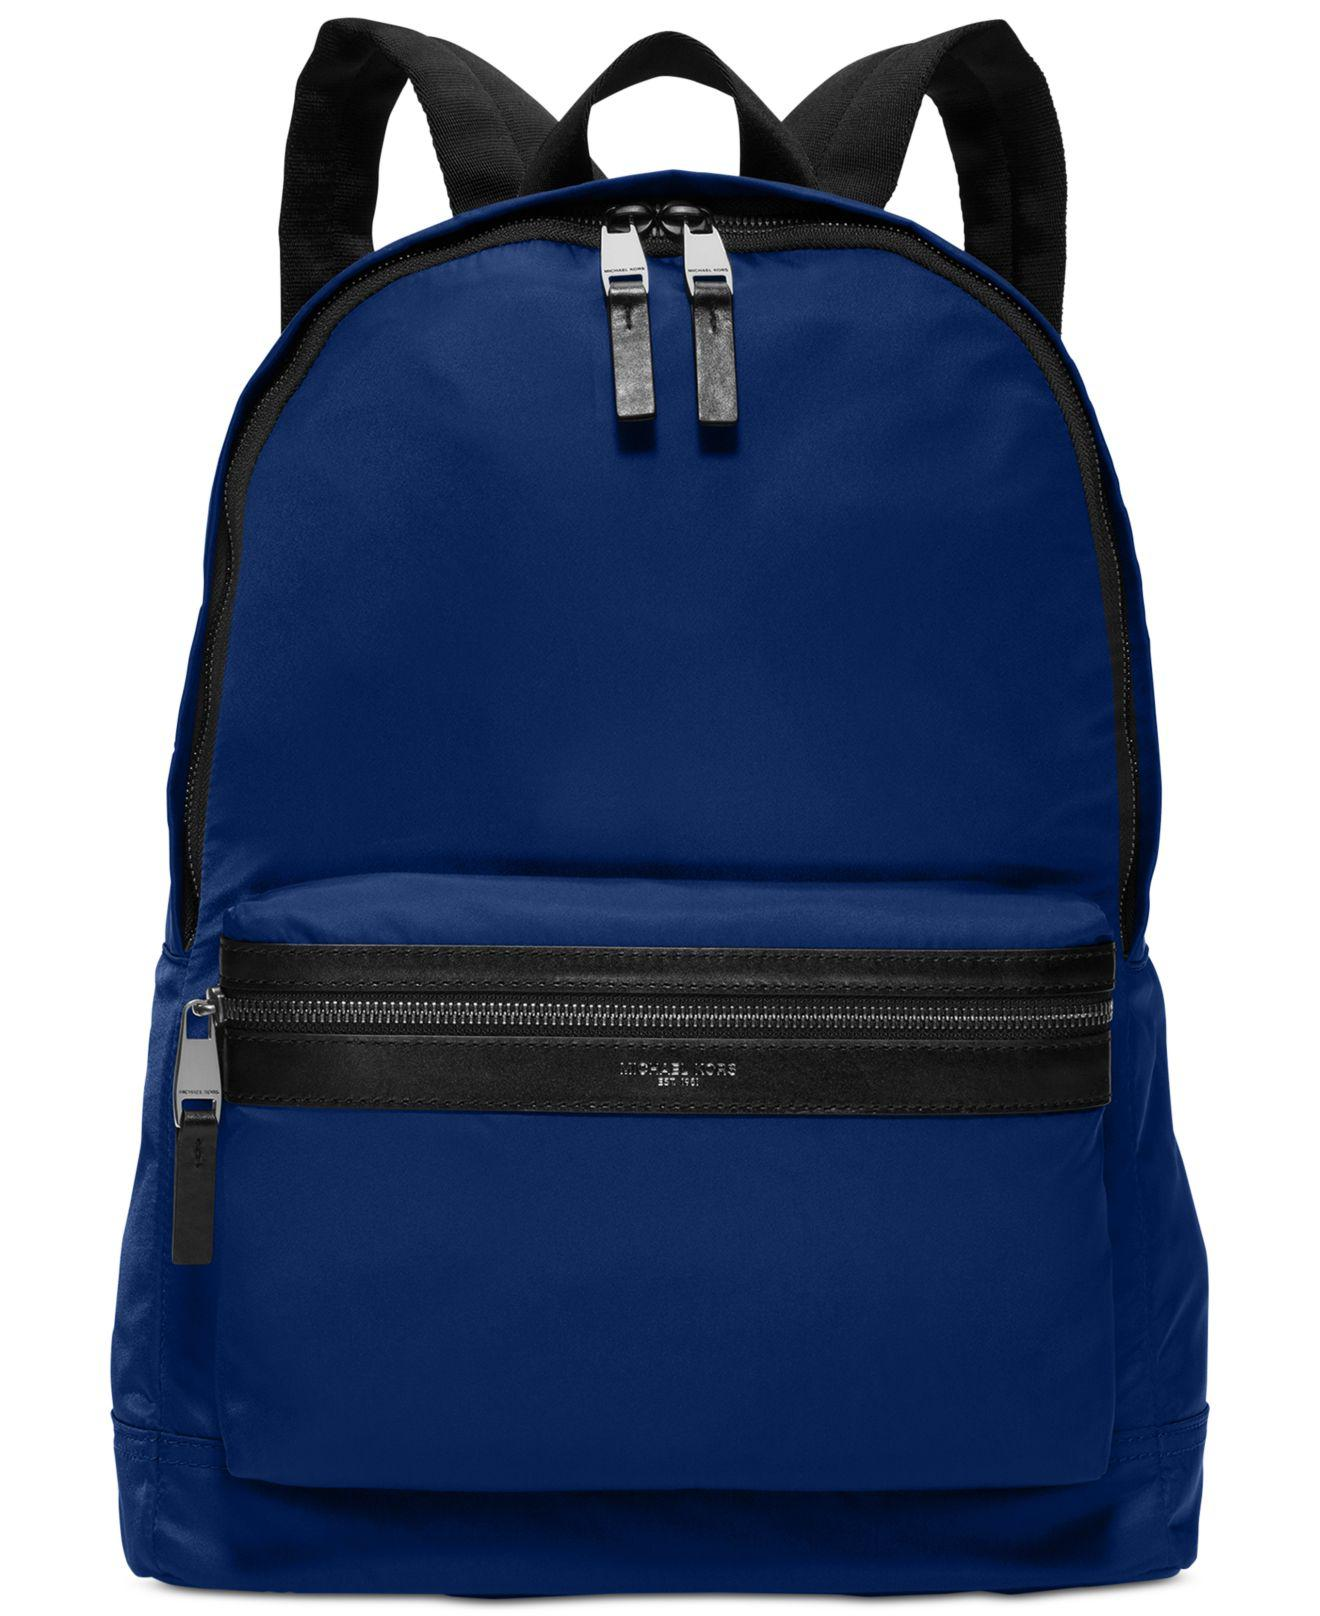 e1dfc54183f1 Michael Kors Kent Lightweight Nylon Backpack in Blue for Men - Lyst